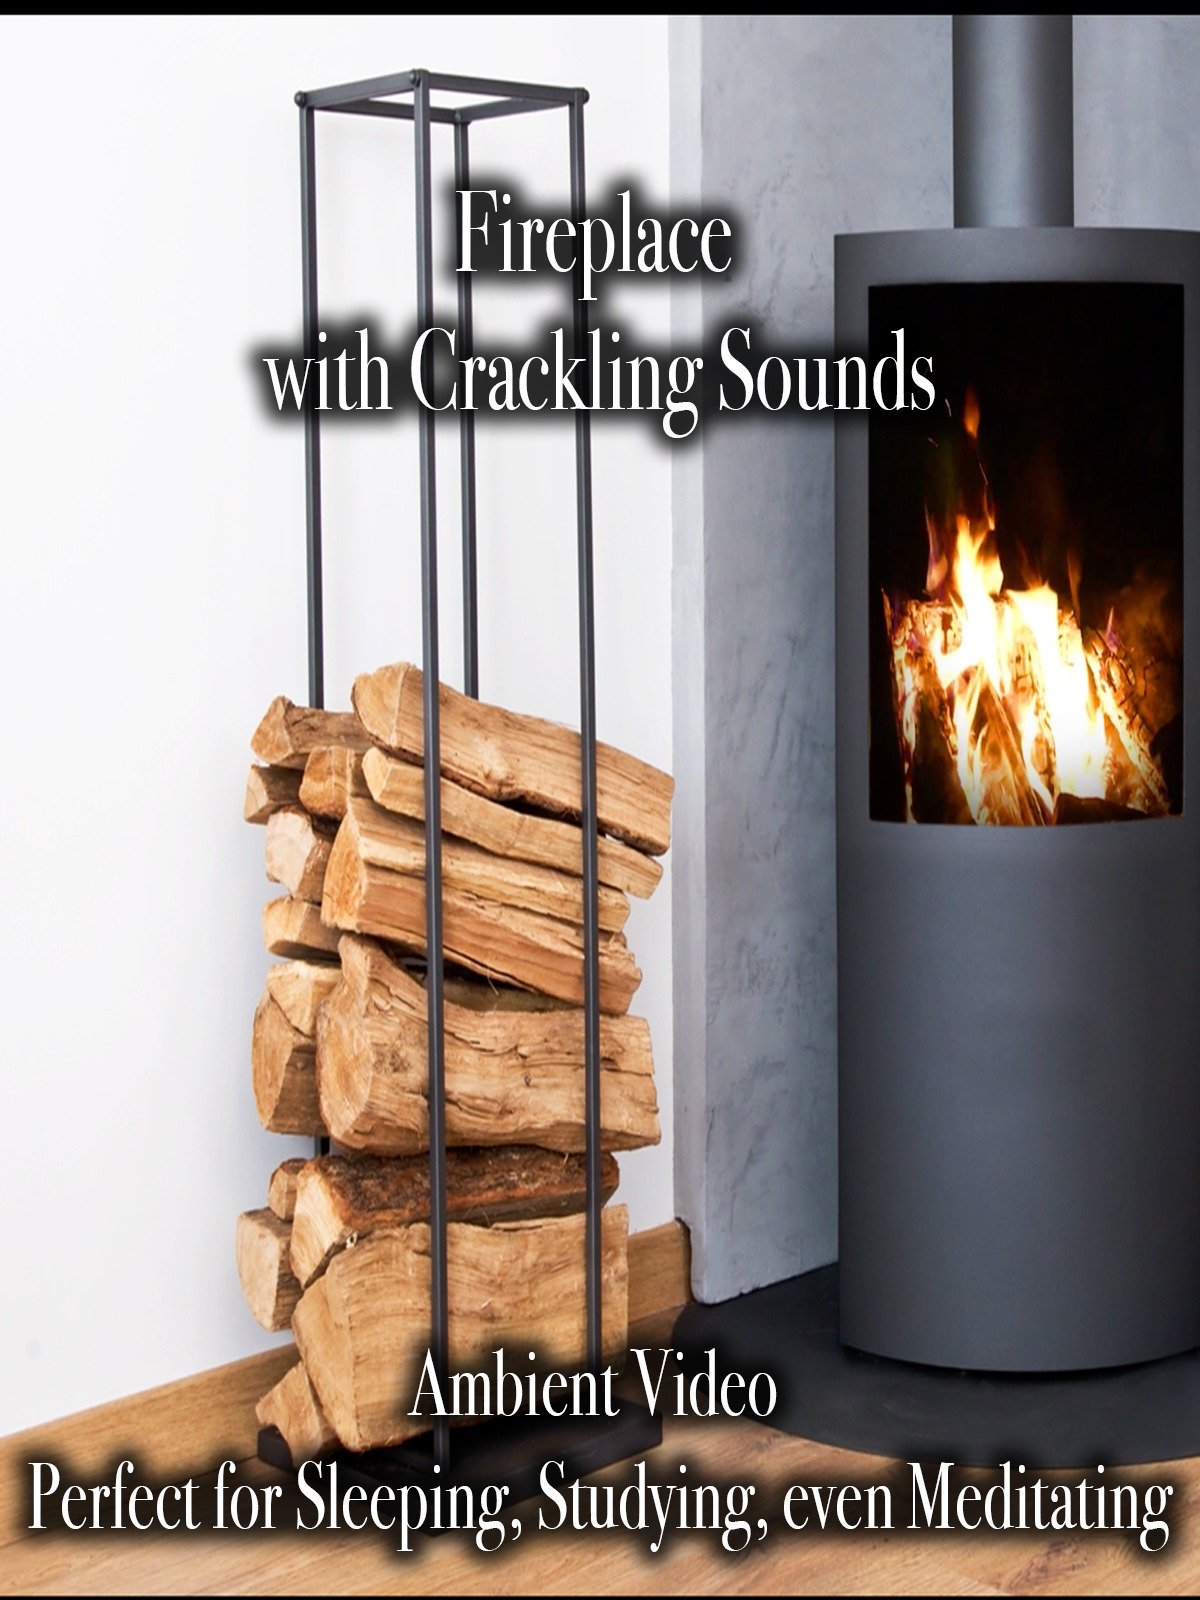 Fireplace with Crackling Sounds Ambient Video Perfect for Sleeping, Studying, even Meditating